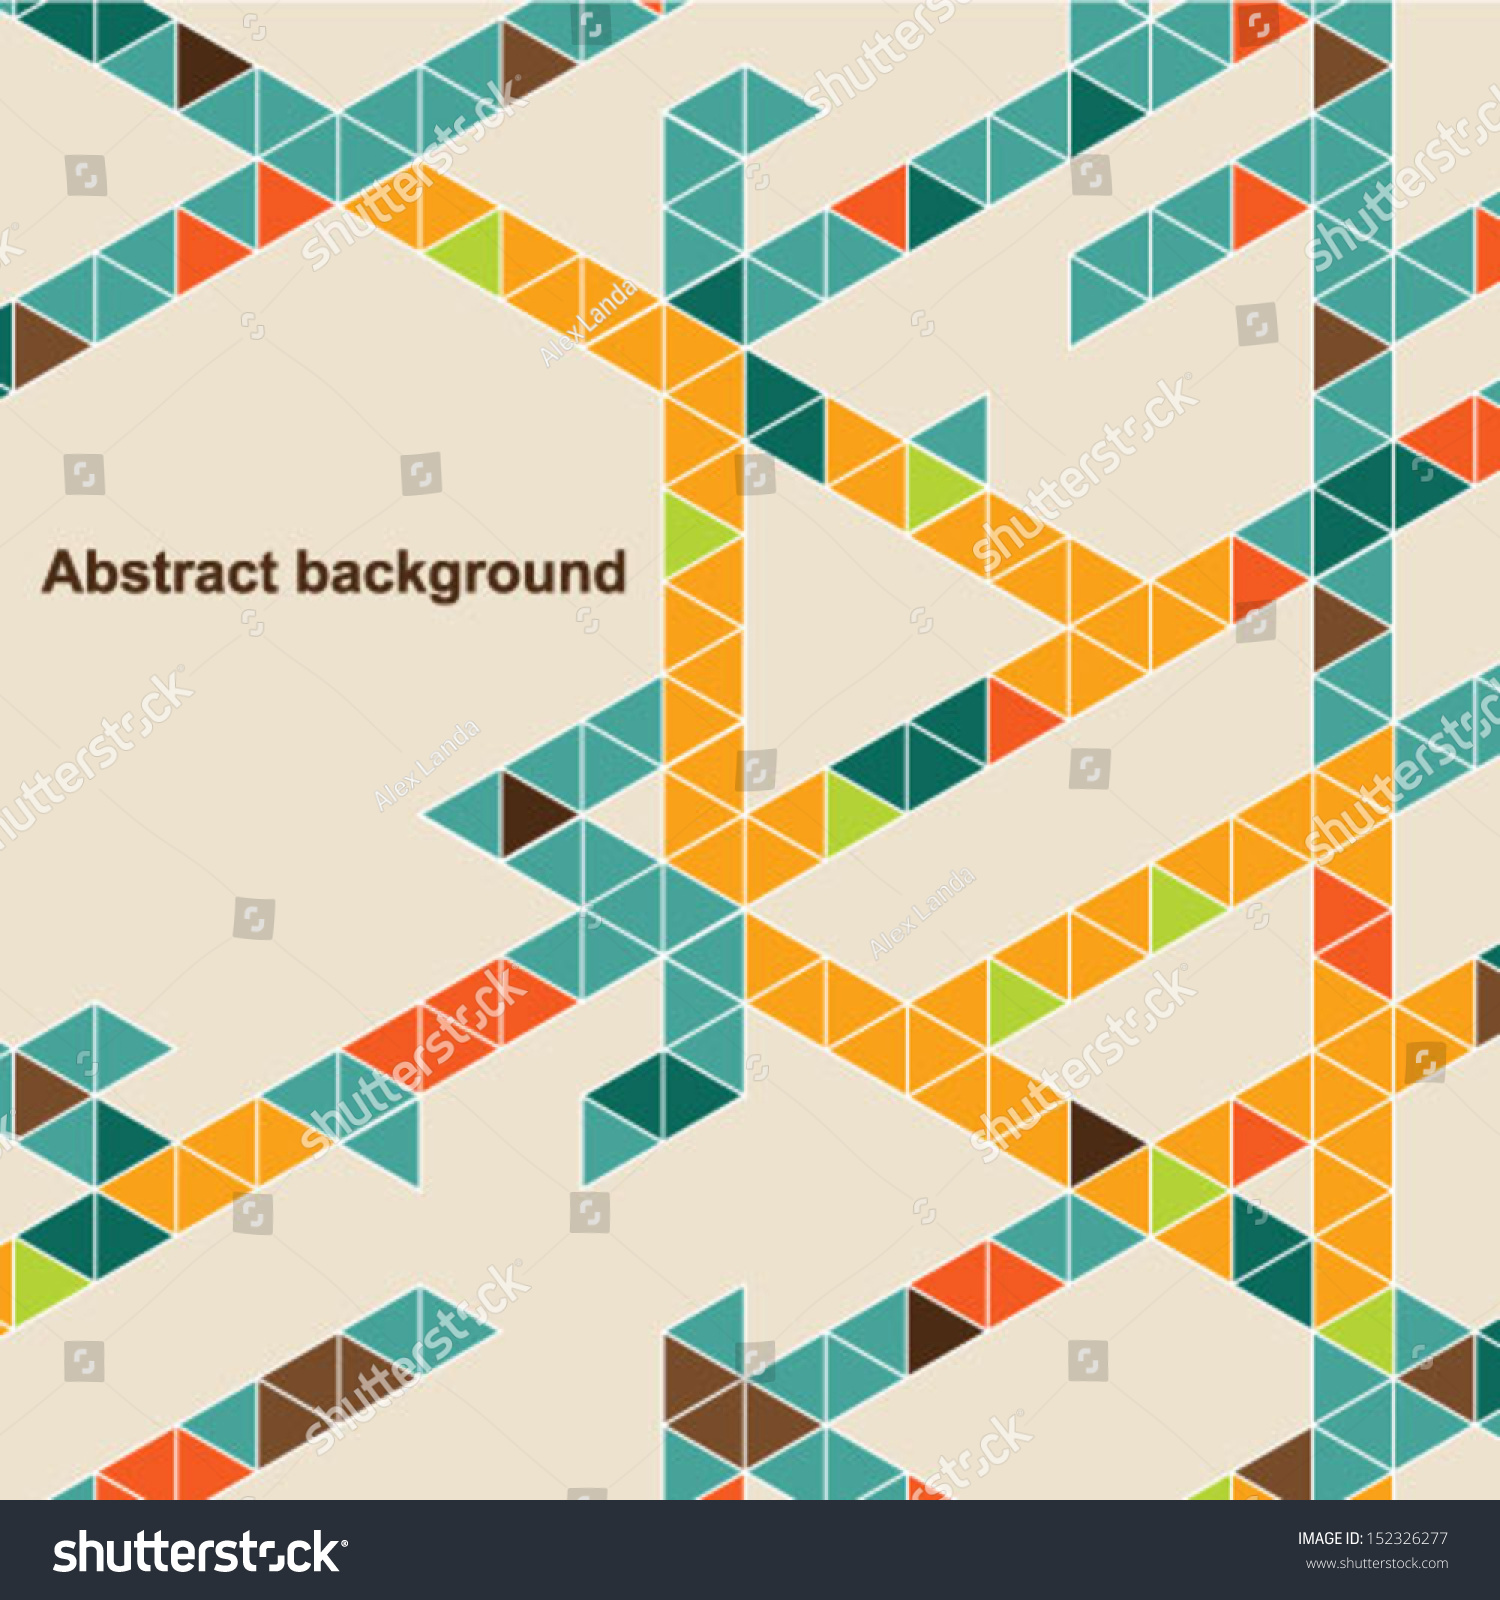 Abstract Book Cover Background : Abstract geometric background vector illustration book